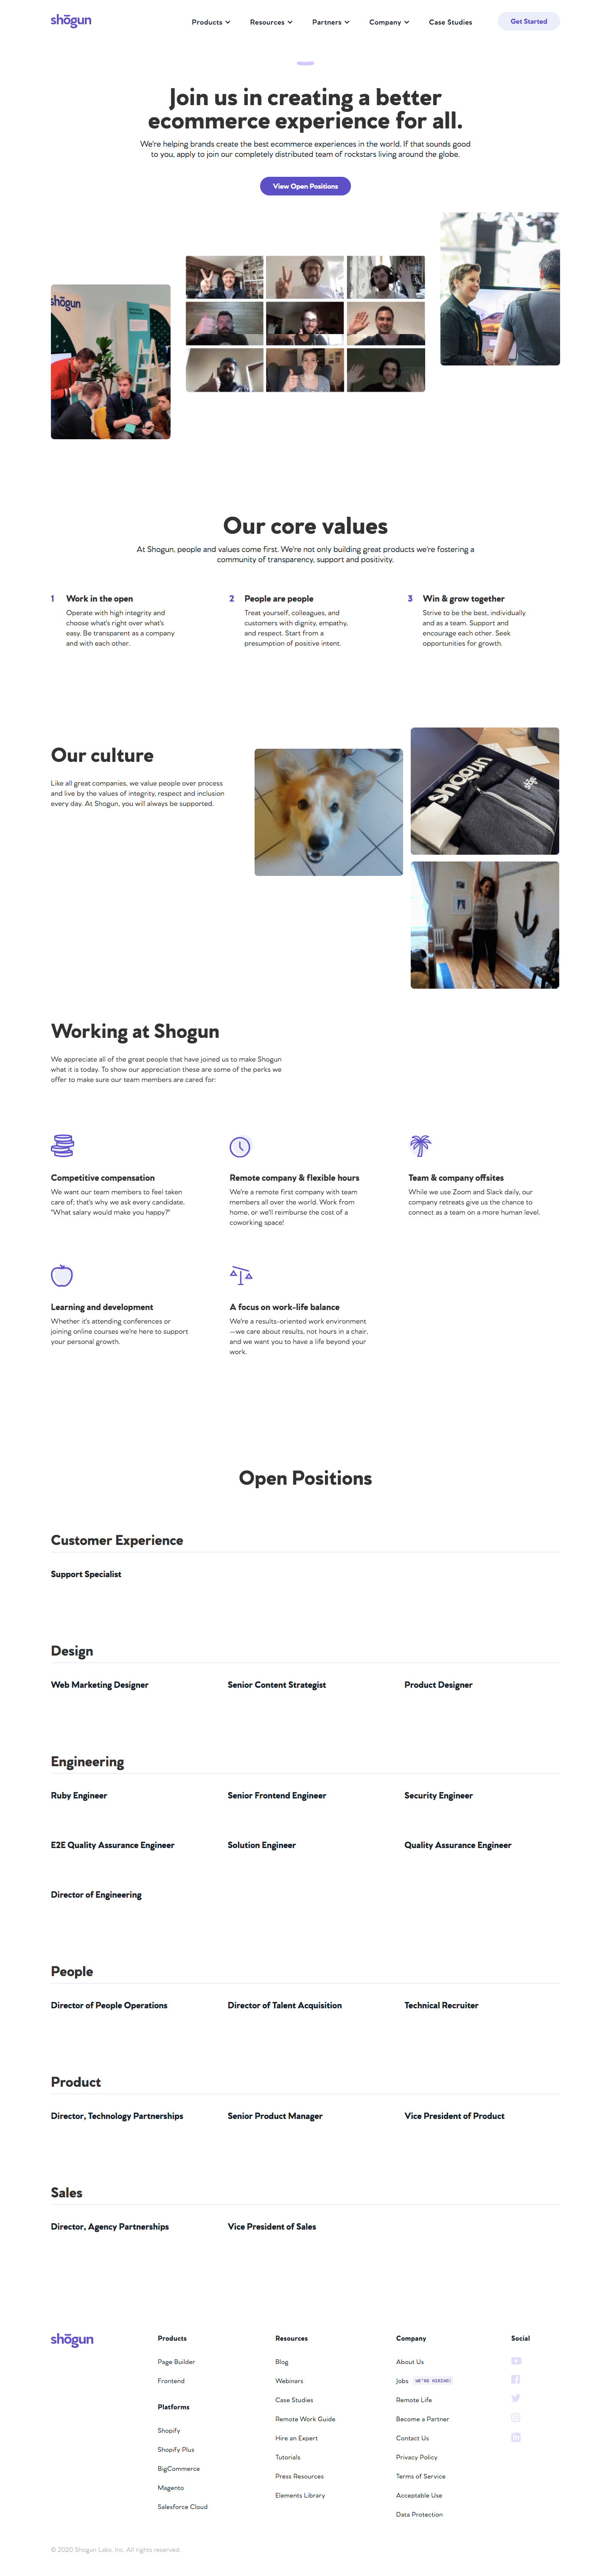 Shogun Careers Page